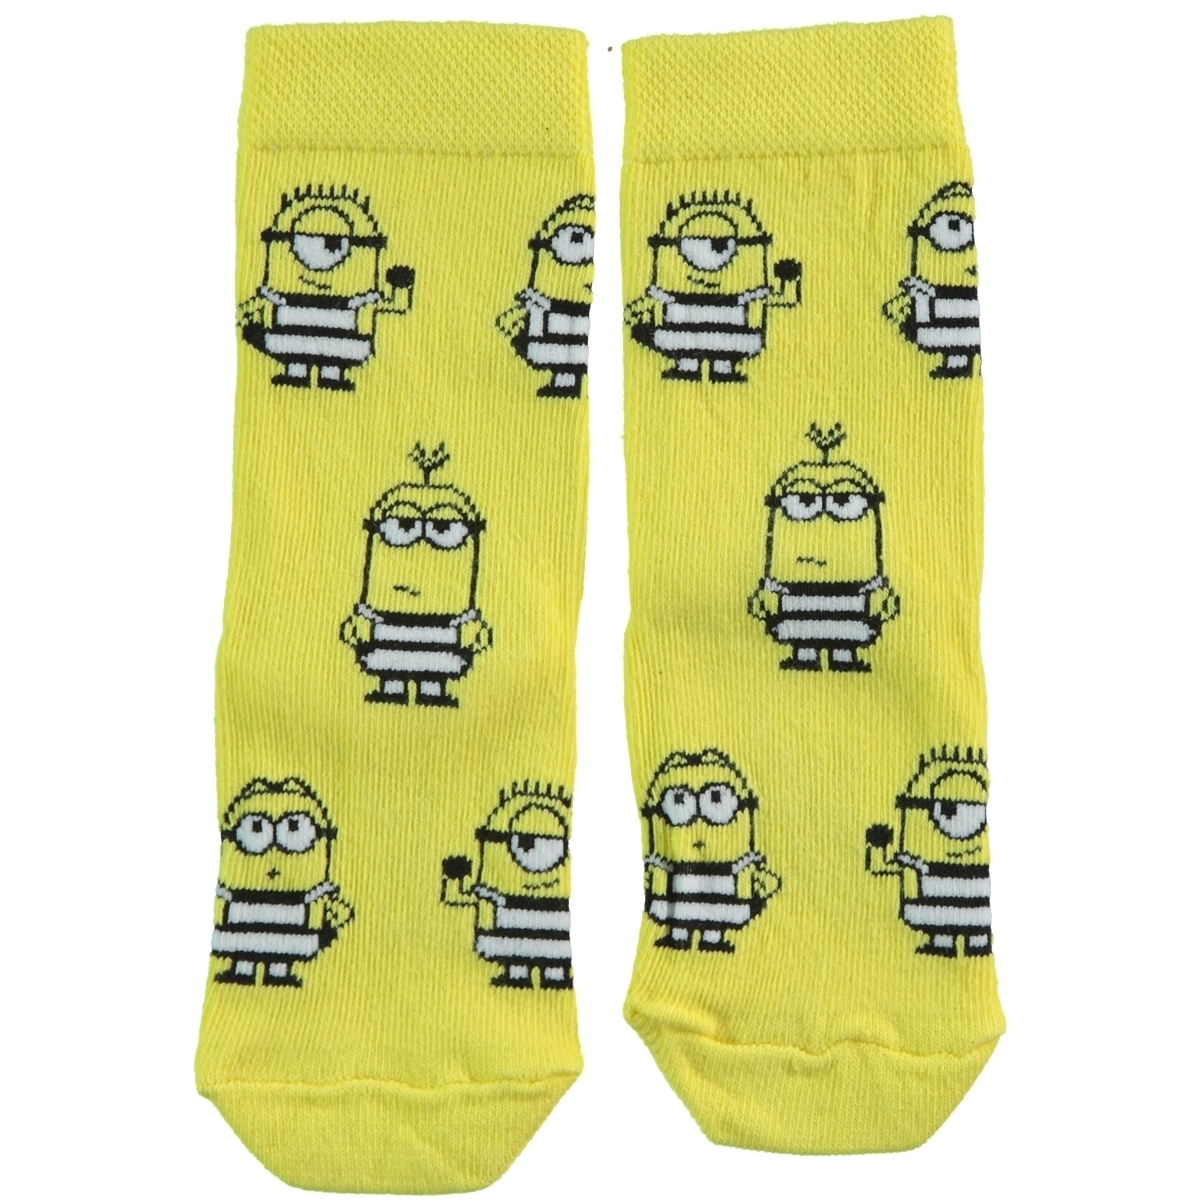 Minions Boy Socks Yellow 5-9 Age